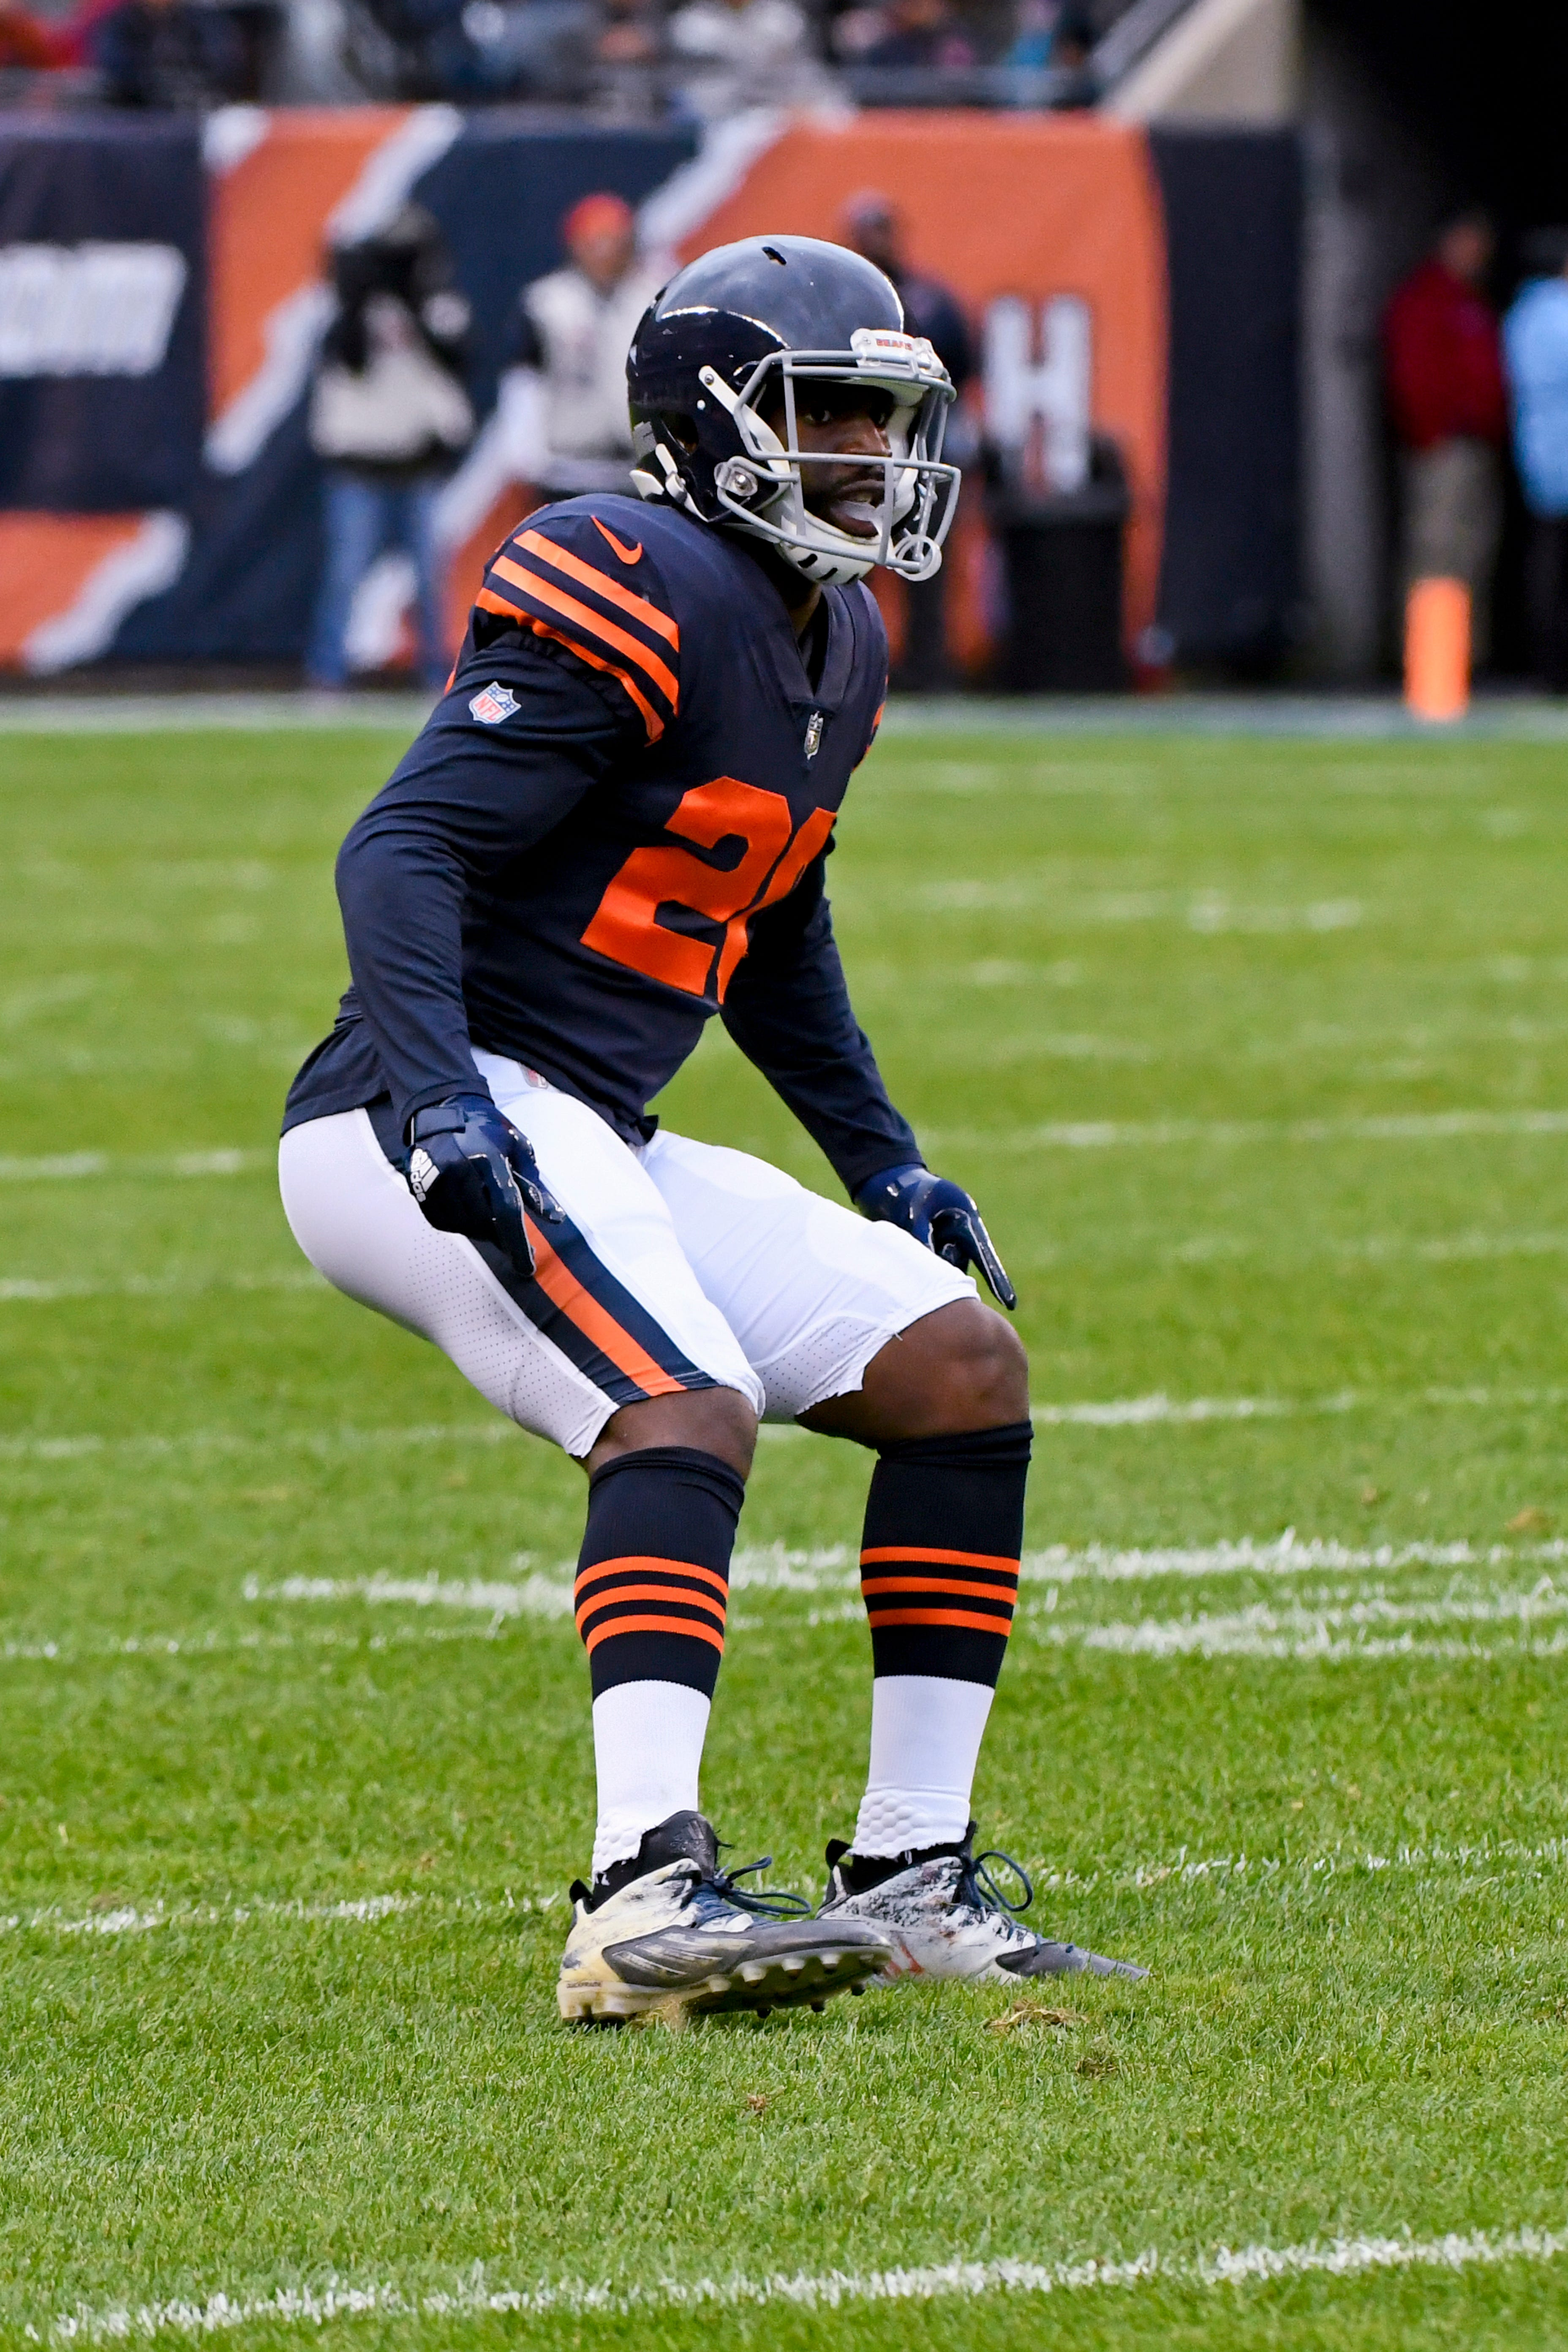 Chicago Bears: Prince Amukamara plays with name misspelled on jersey